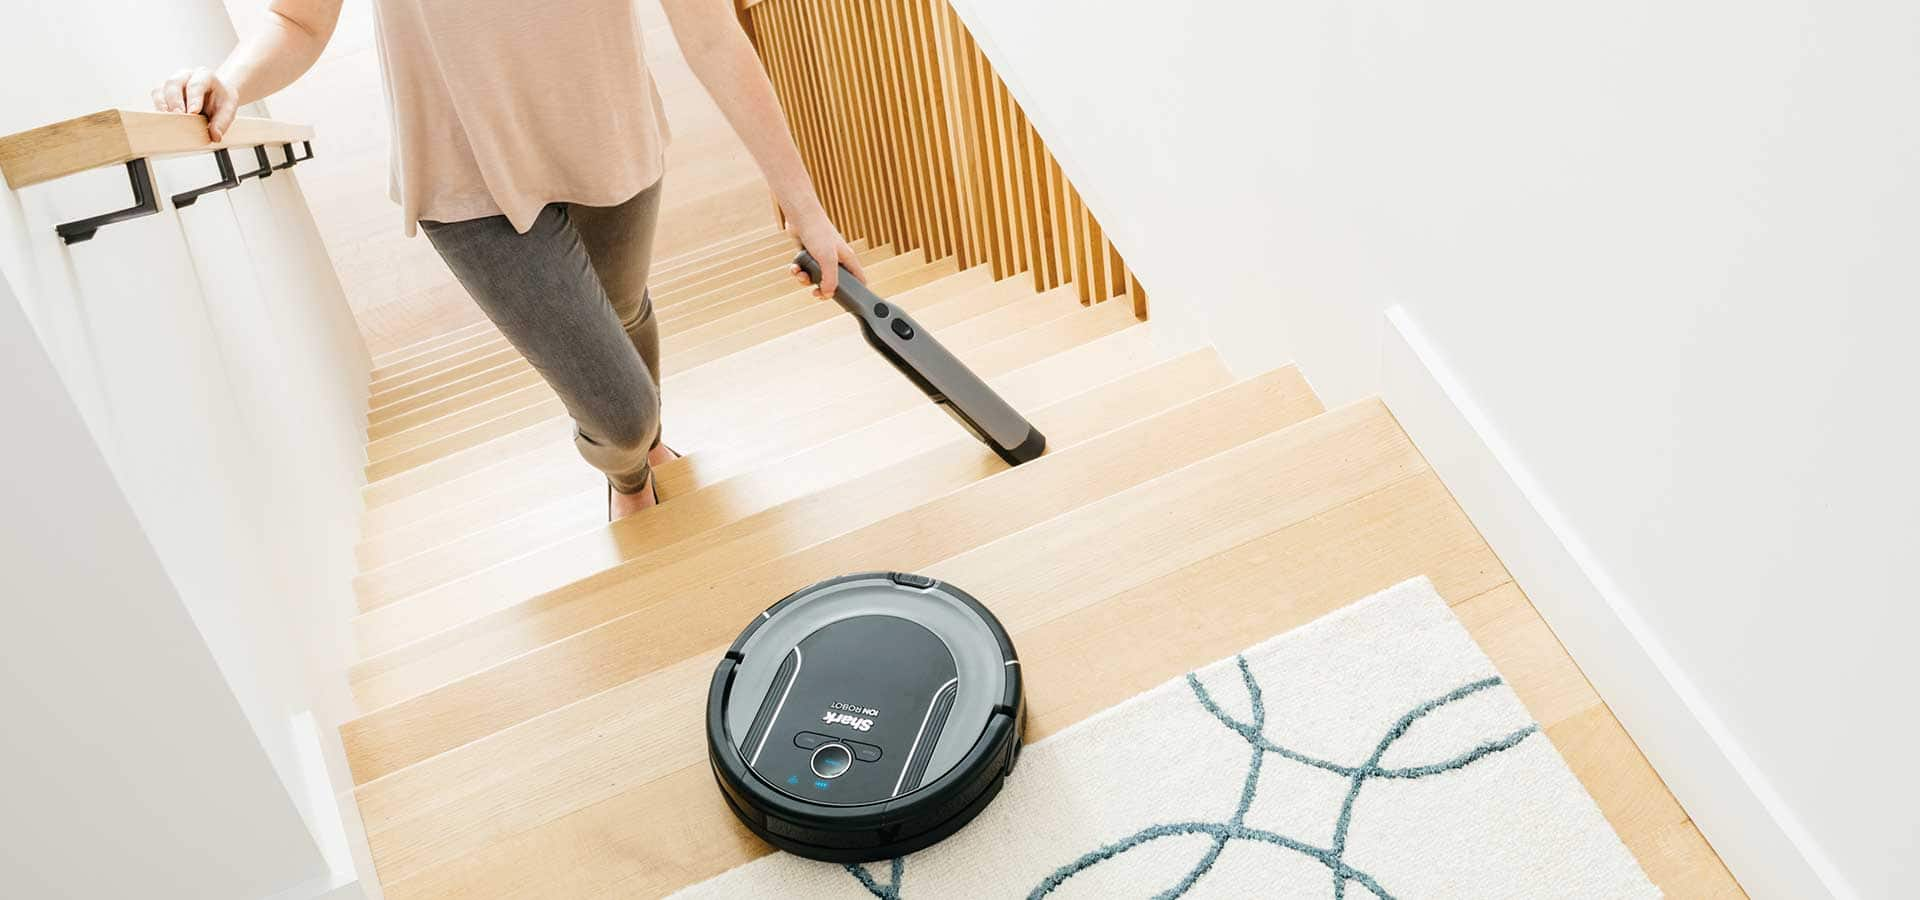 Vacuum Cleaners Steam Mops Amp Irons Home Cleaning